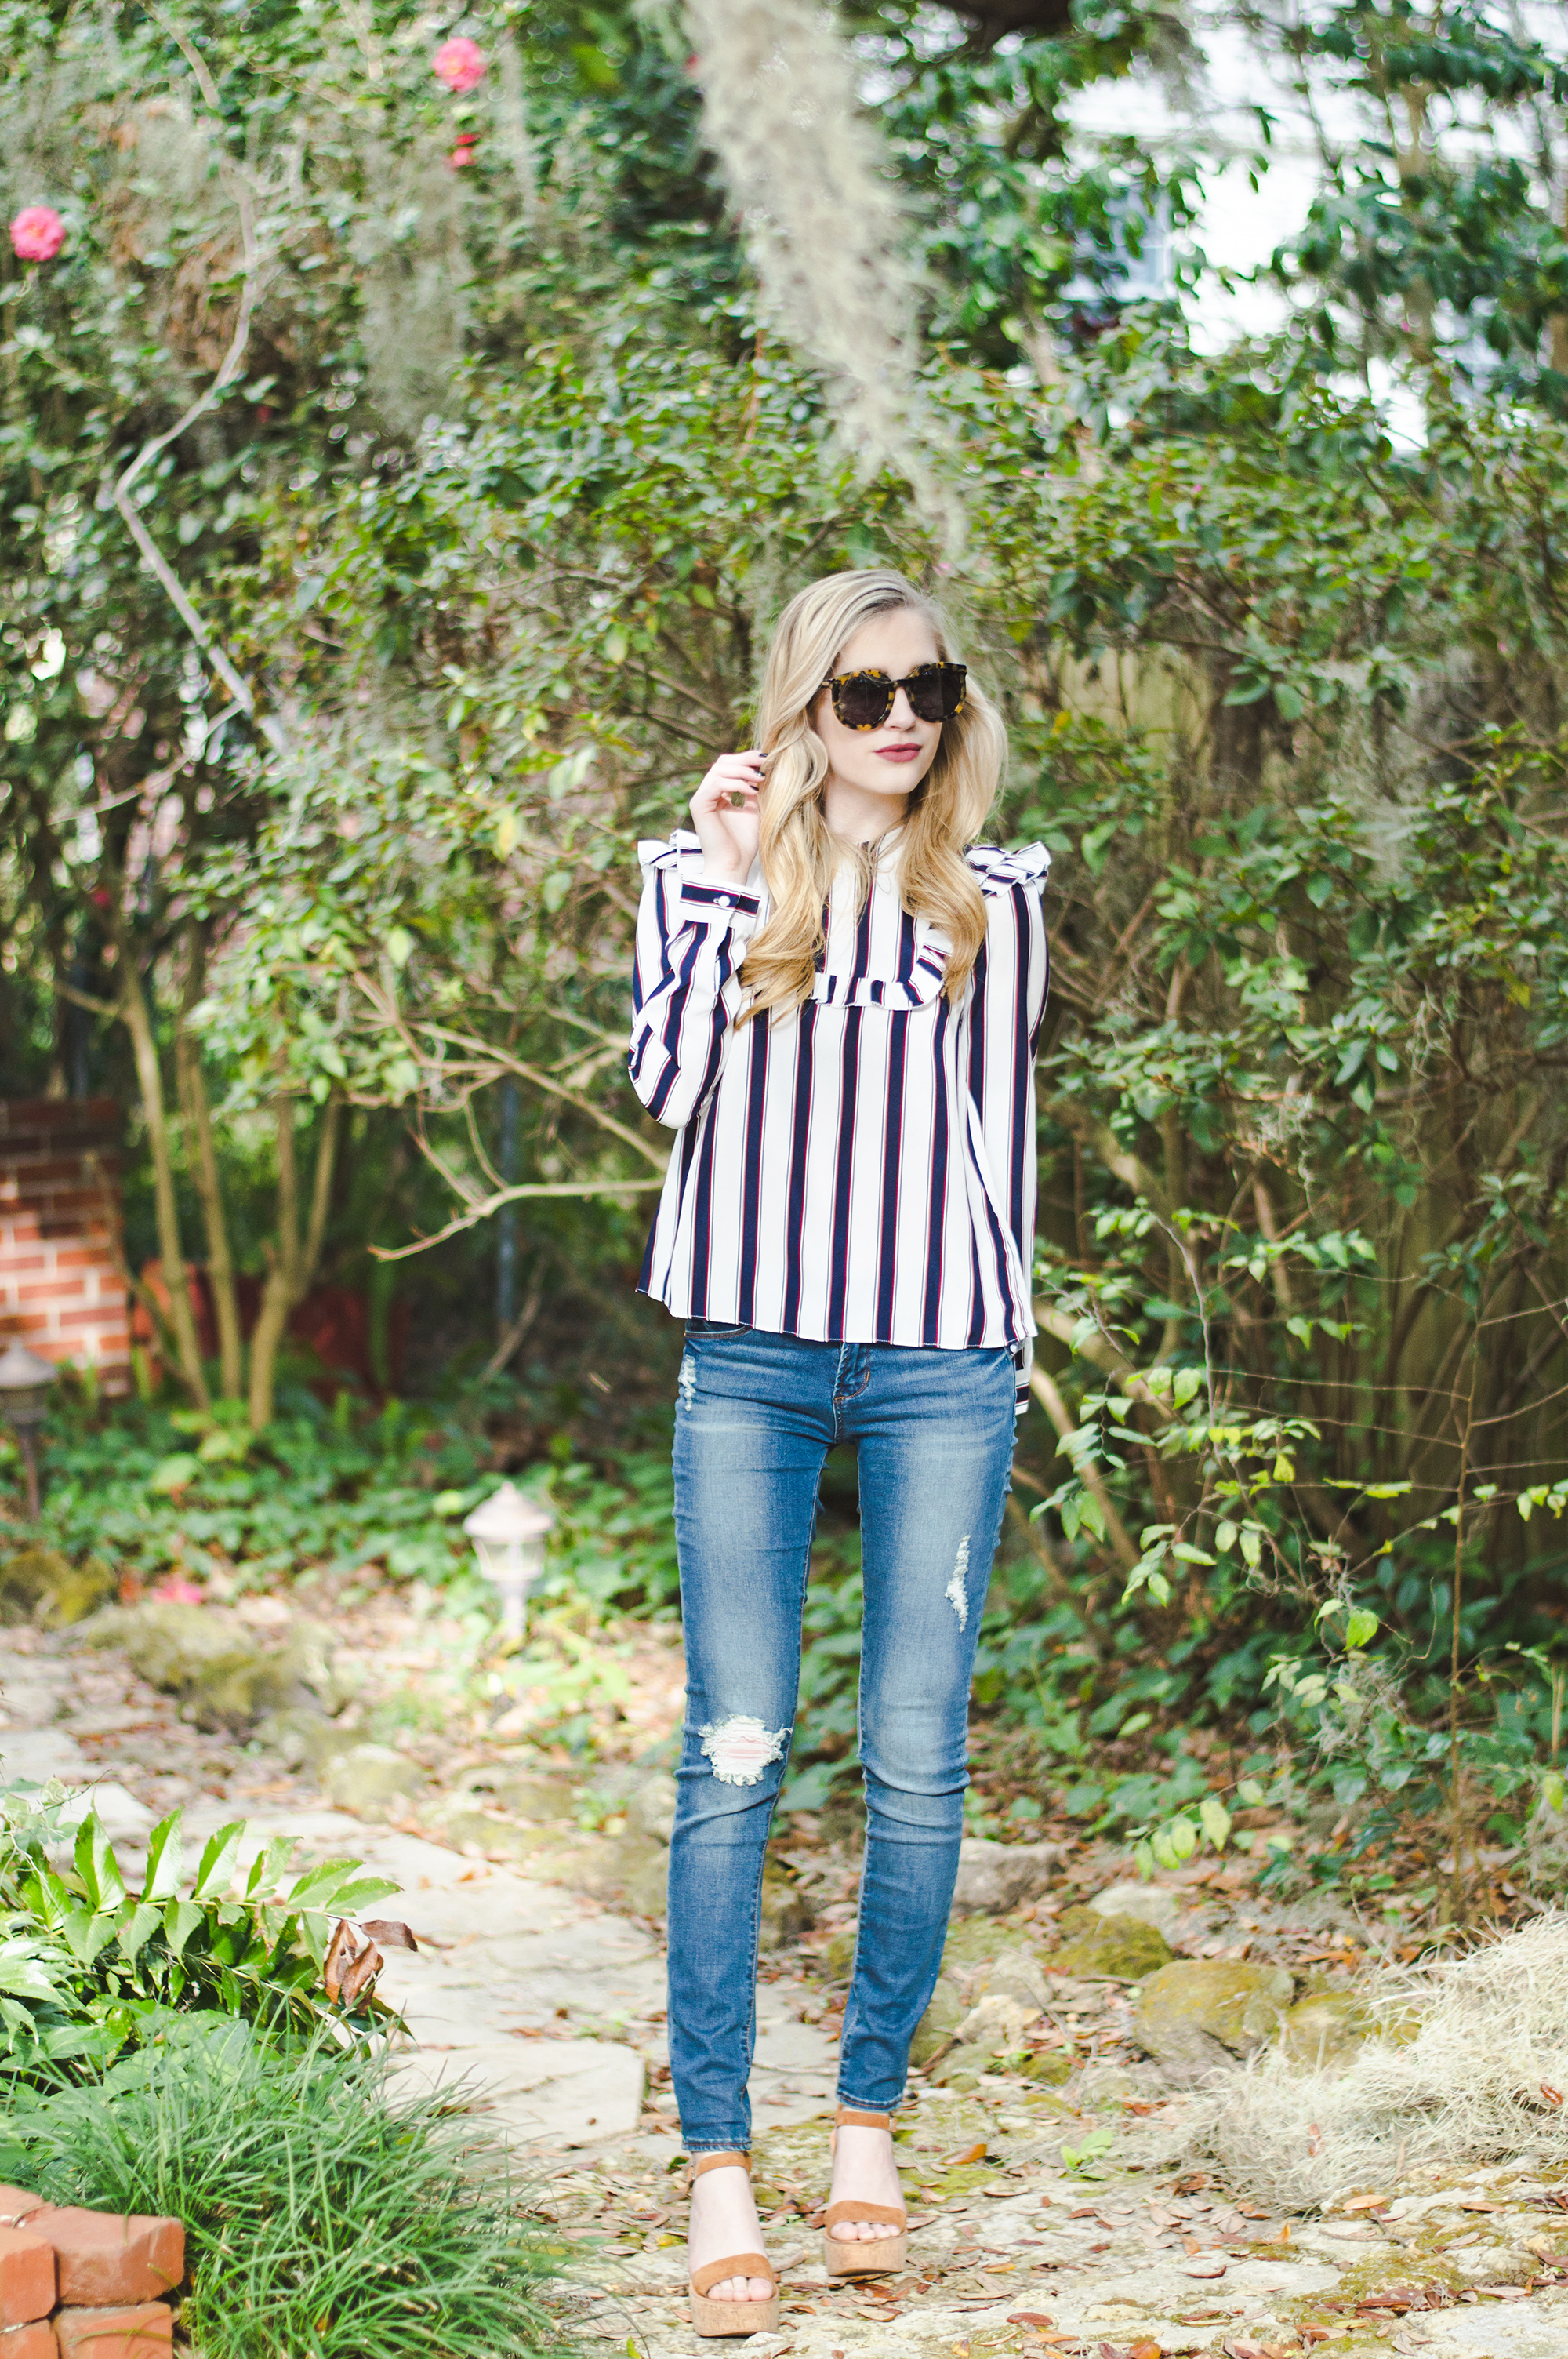 styelled-blog-elle-elisabeth-fashion-style-blogger-fblogger-like-to-know-it-articles-of-society-english-factory-karen-walker-dolce-vita-shop-smac-stripes-10